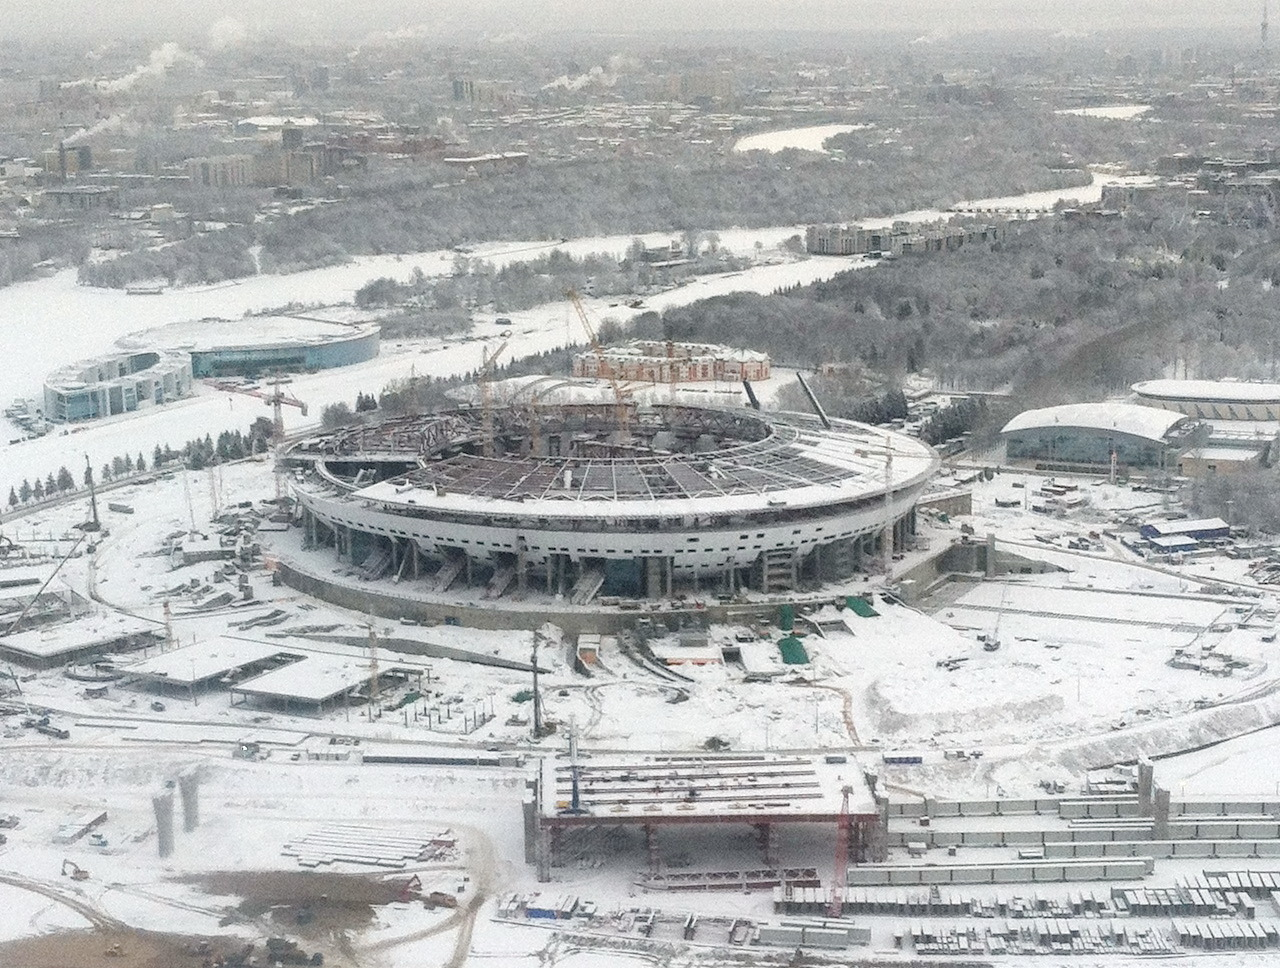 Zenit Arena – The Billion-Euro Debacle